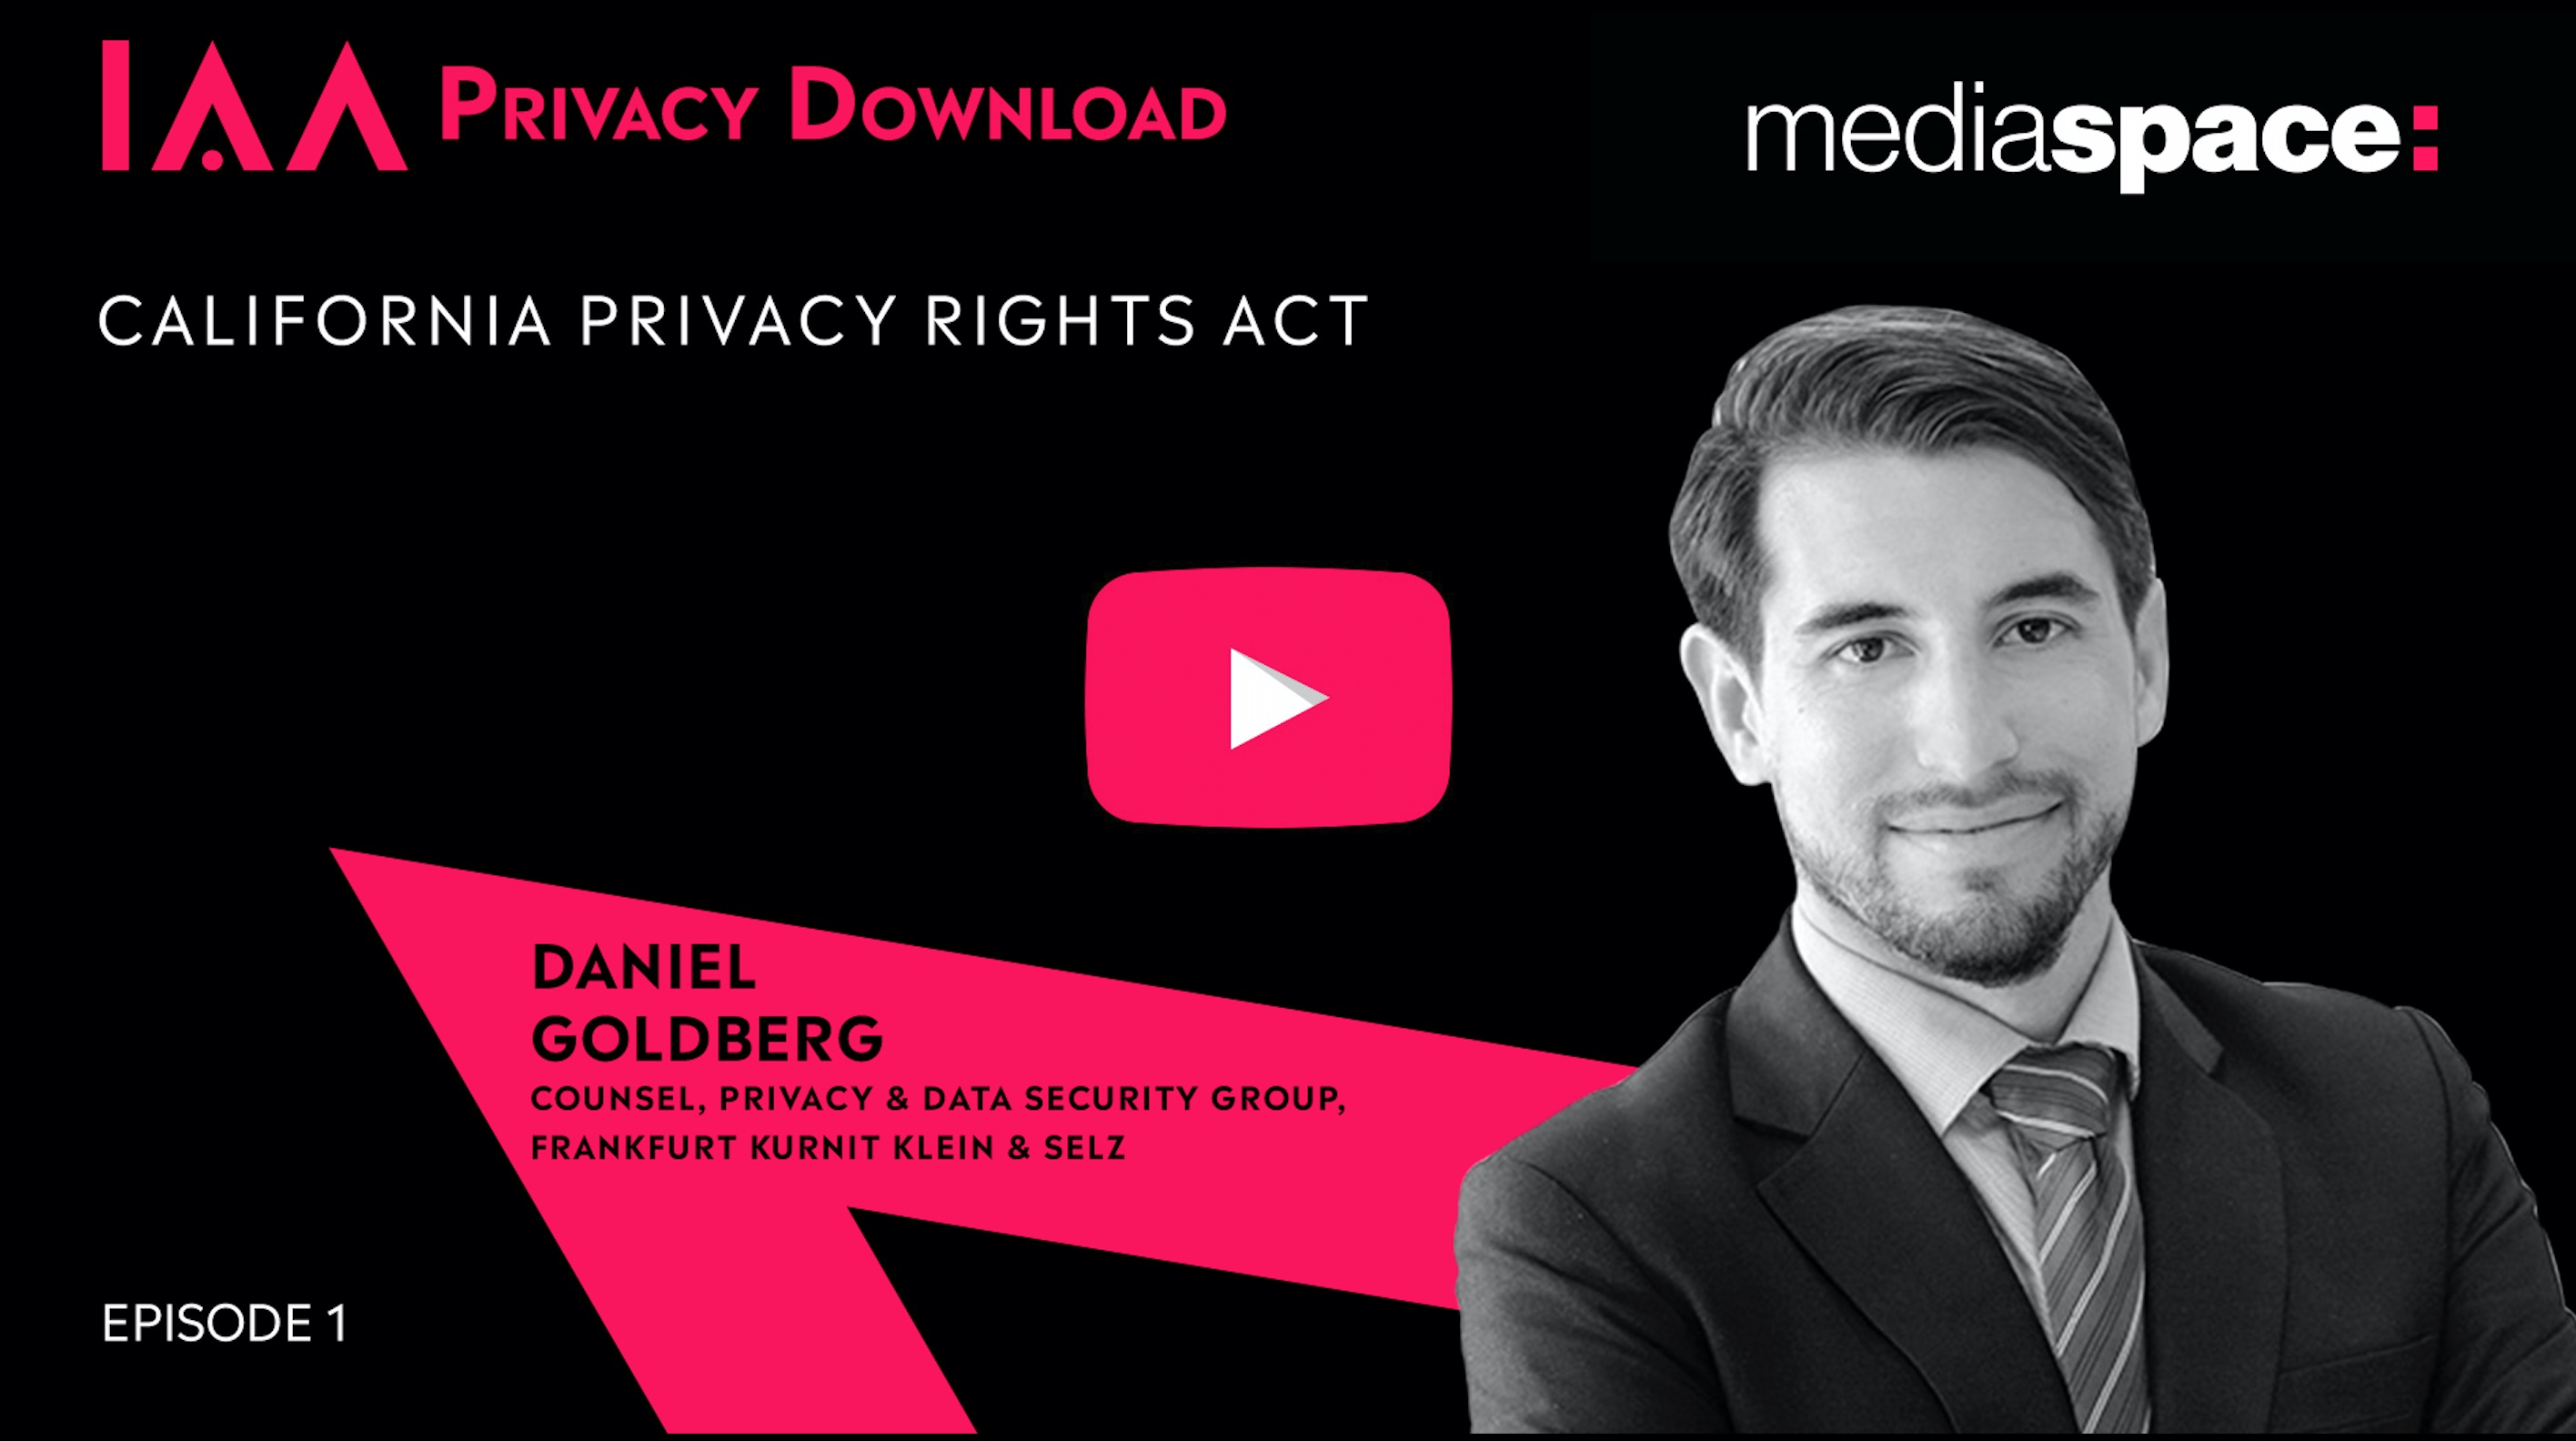 IAA and Mediaspace partner to launch privacy download series